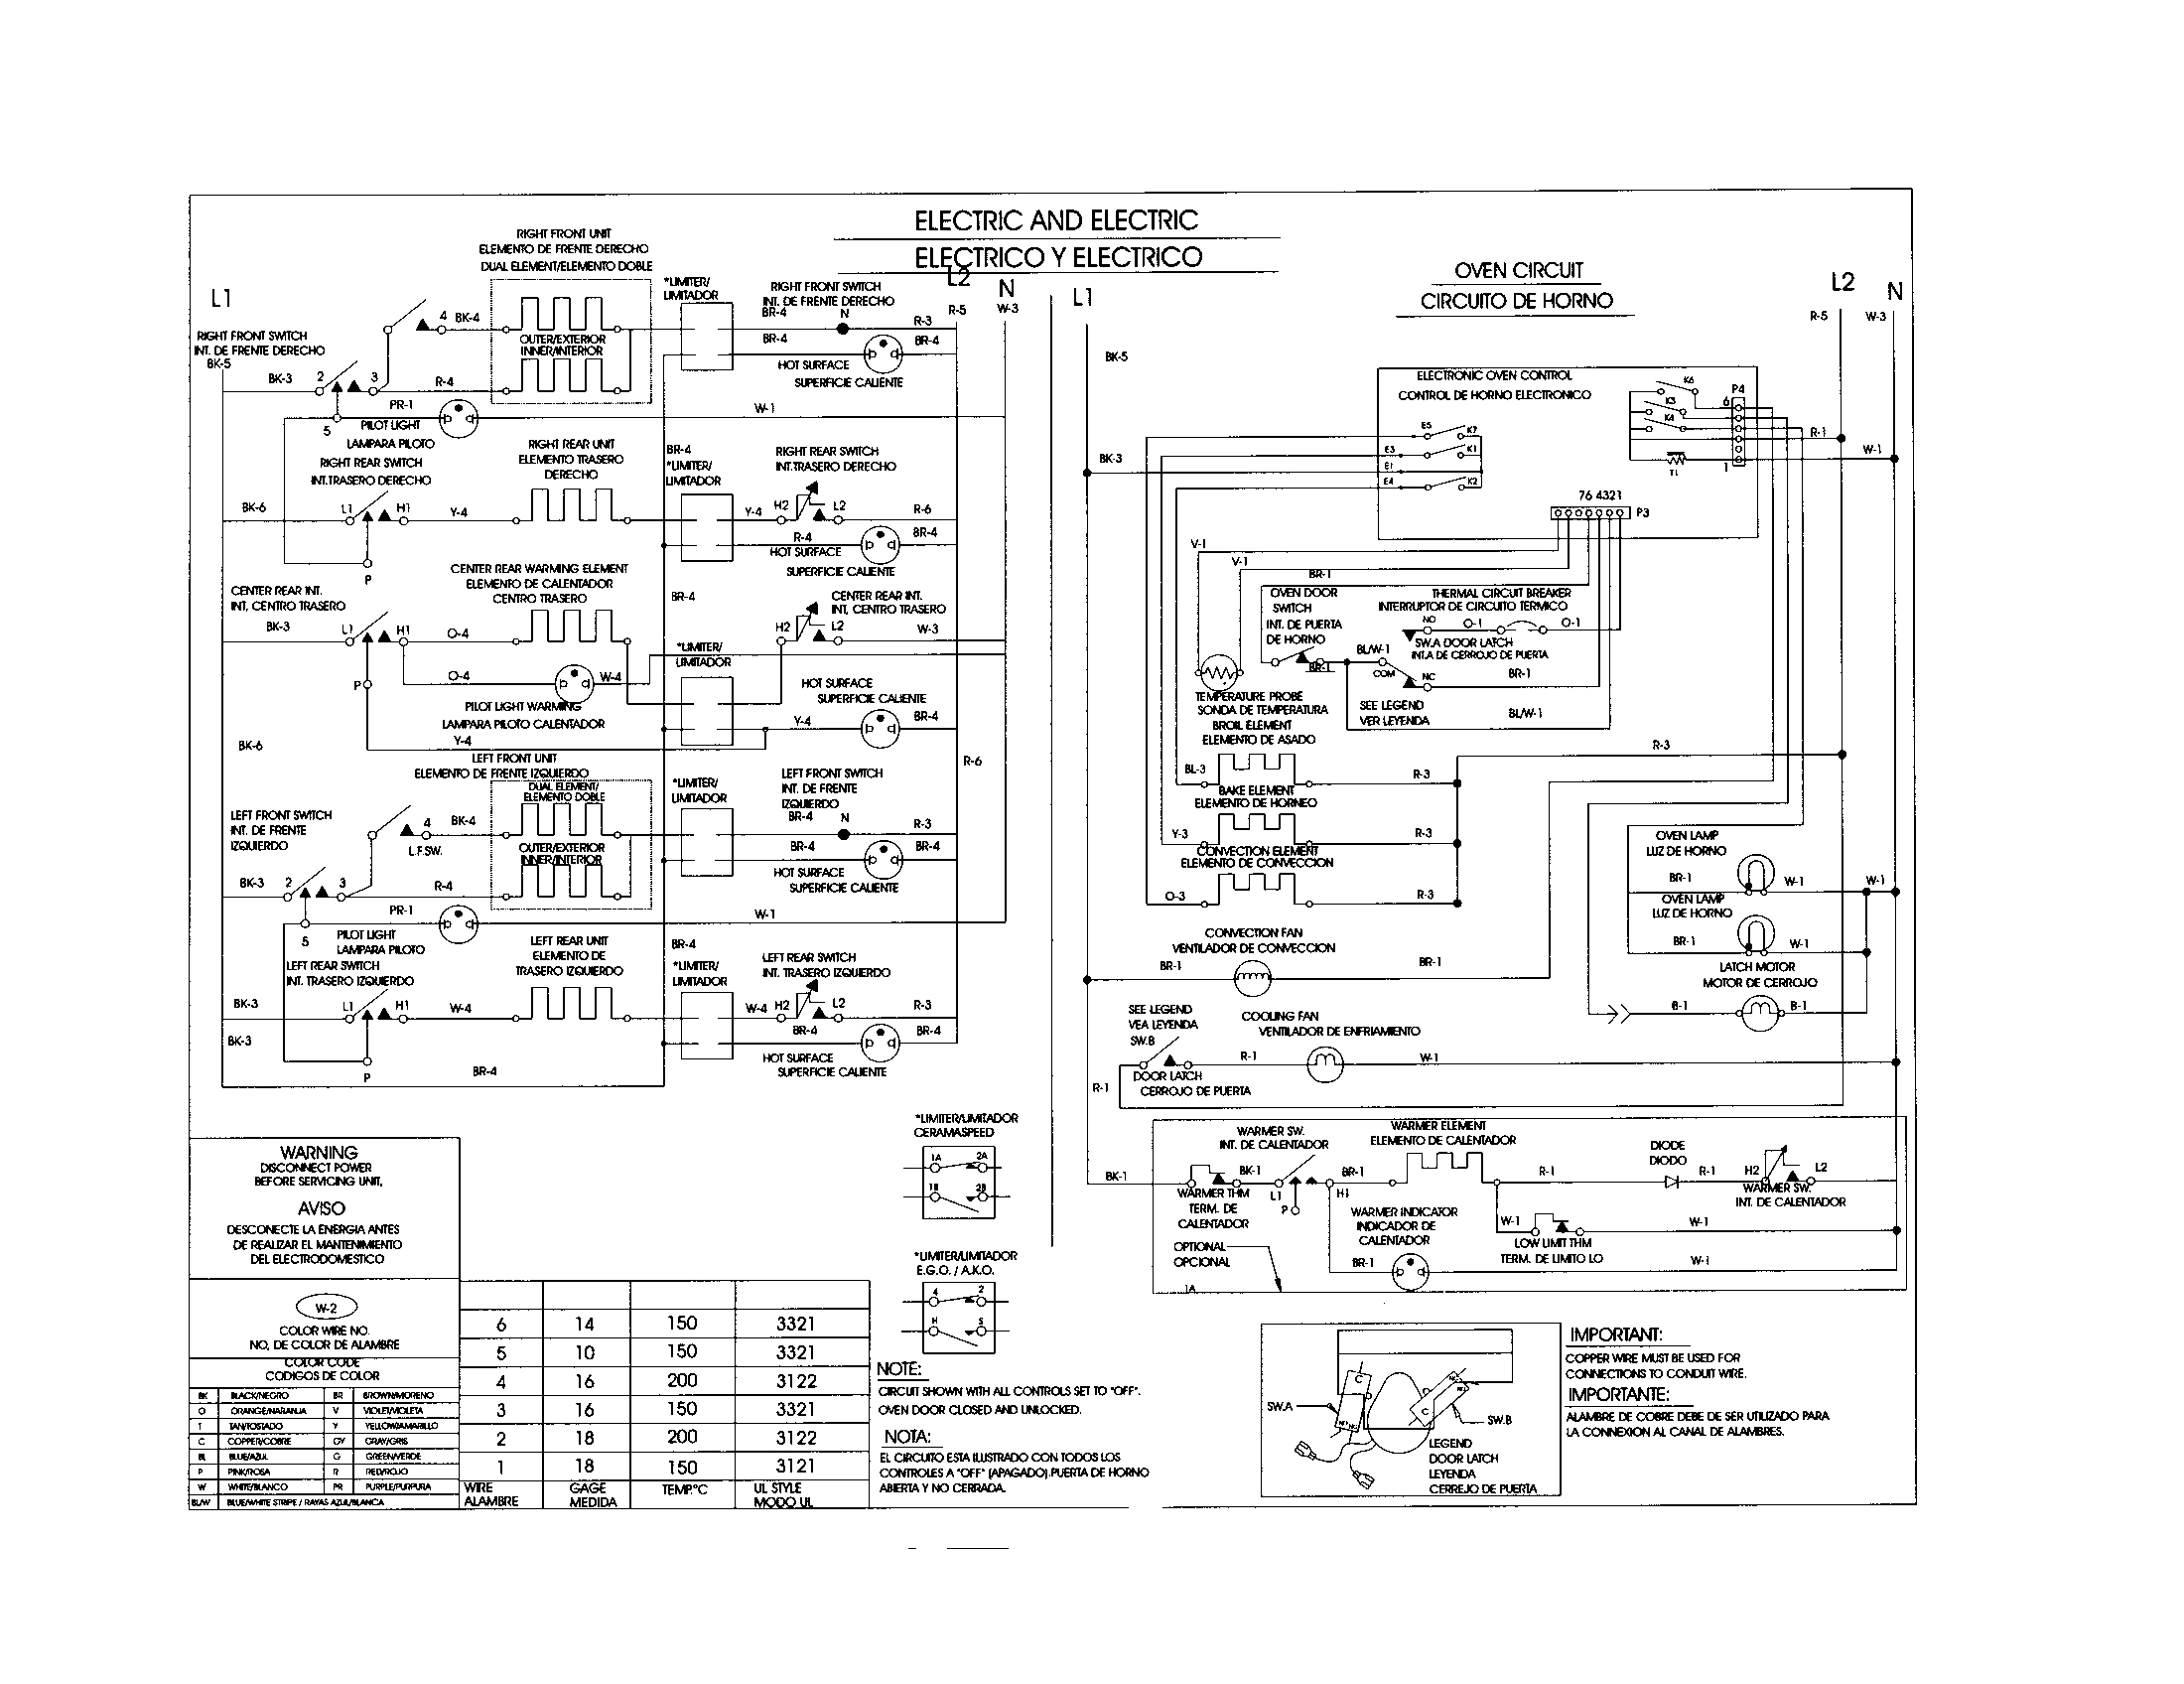 kenmore dishwasher wiring diagram to wiring diagram parts with regard to kenmore elite dishwasher 665 parts diagram kenmore dishwasher wiring diagram dishwasher wiring diagram at gsmx.co